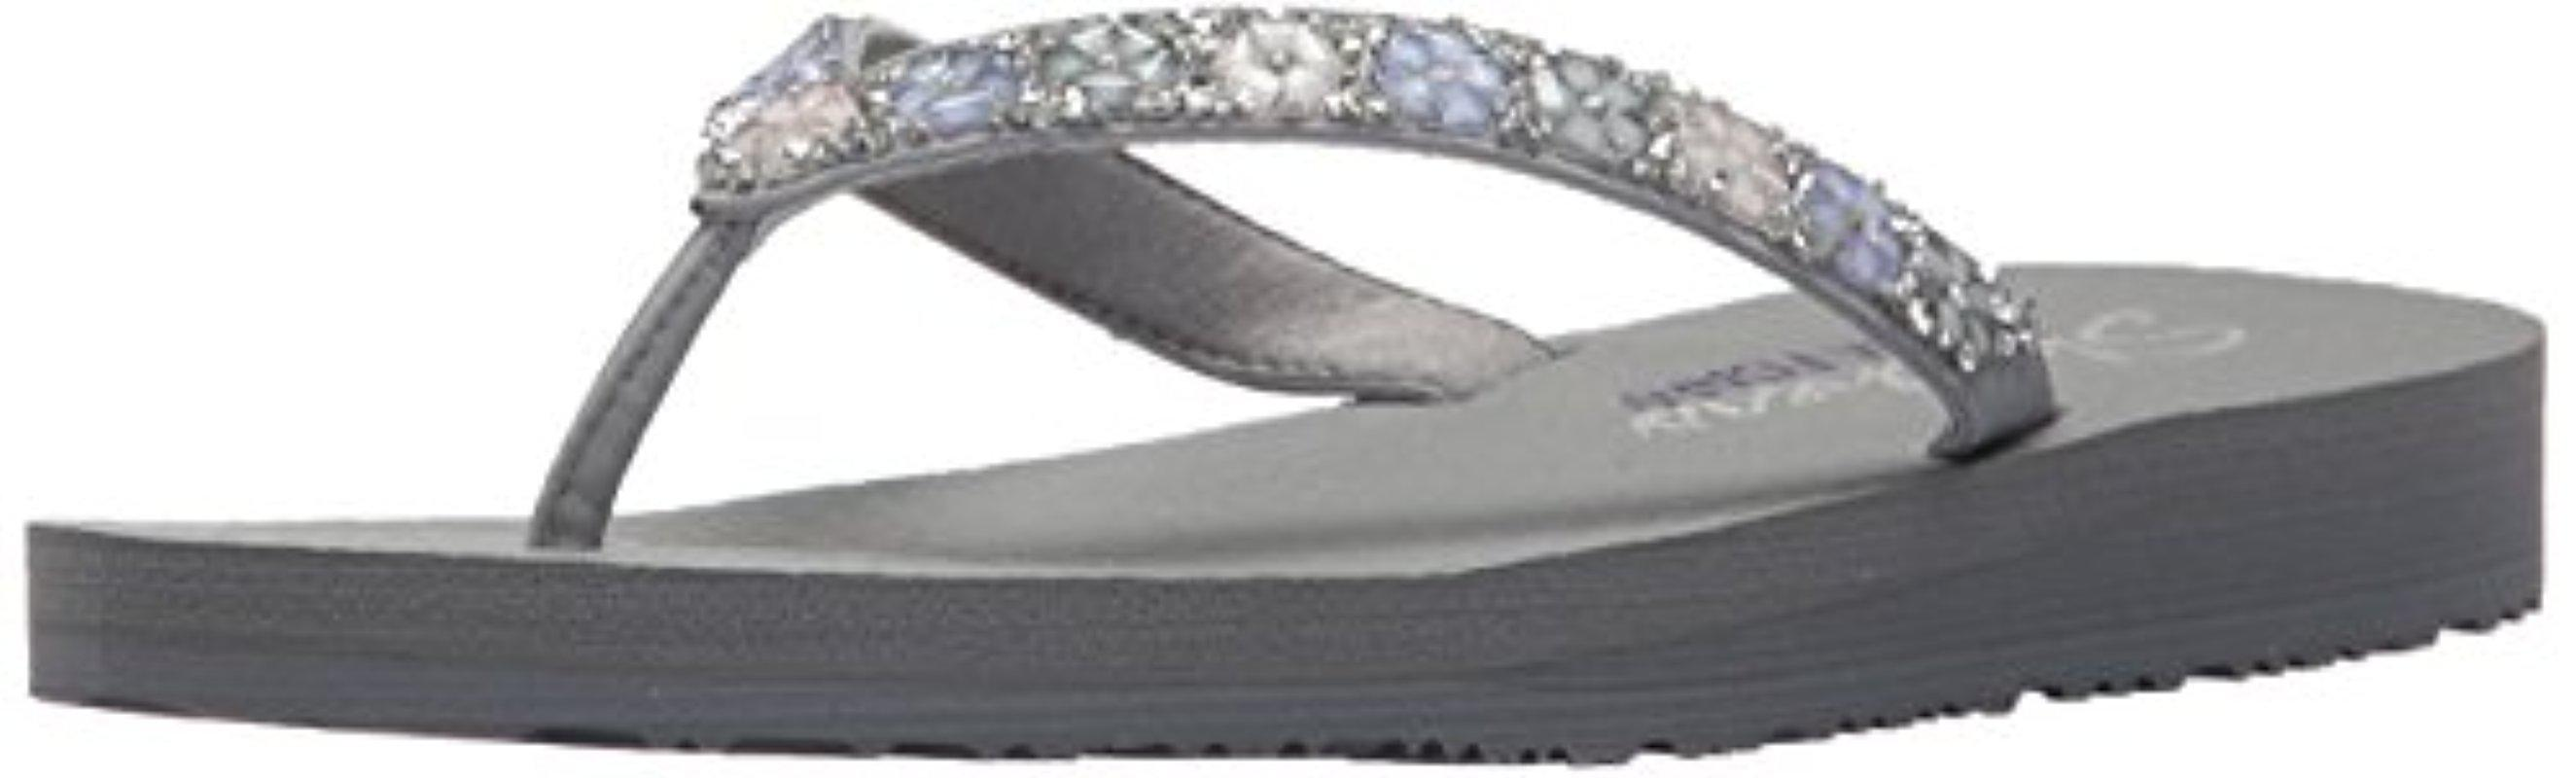 52345bcda61c Lyst - Skechers Meditation-daisy Delight Flip-flop in Gray